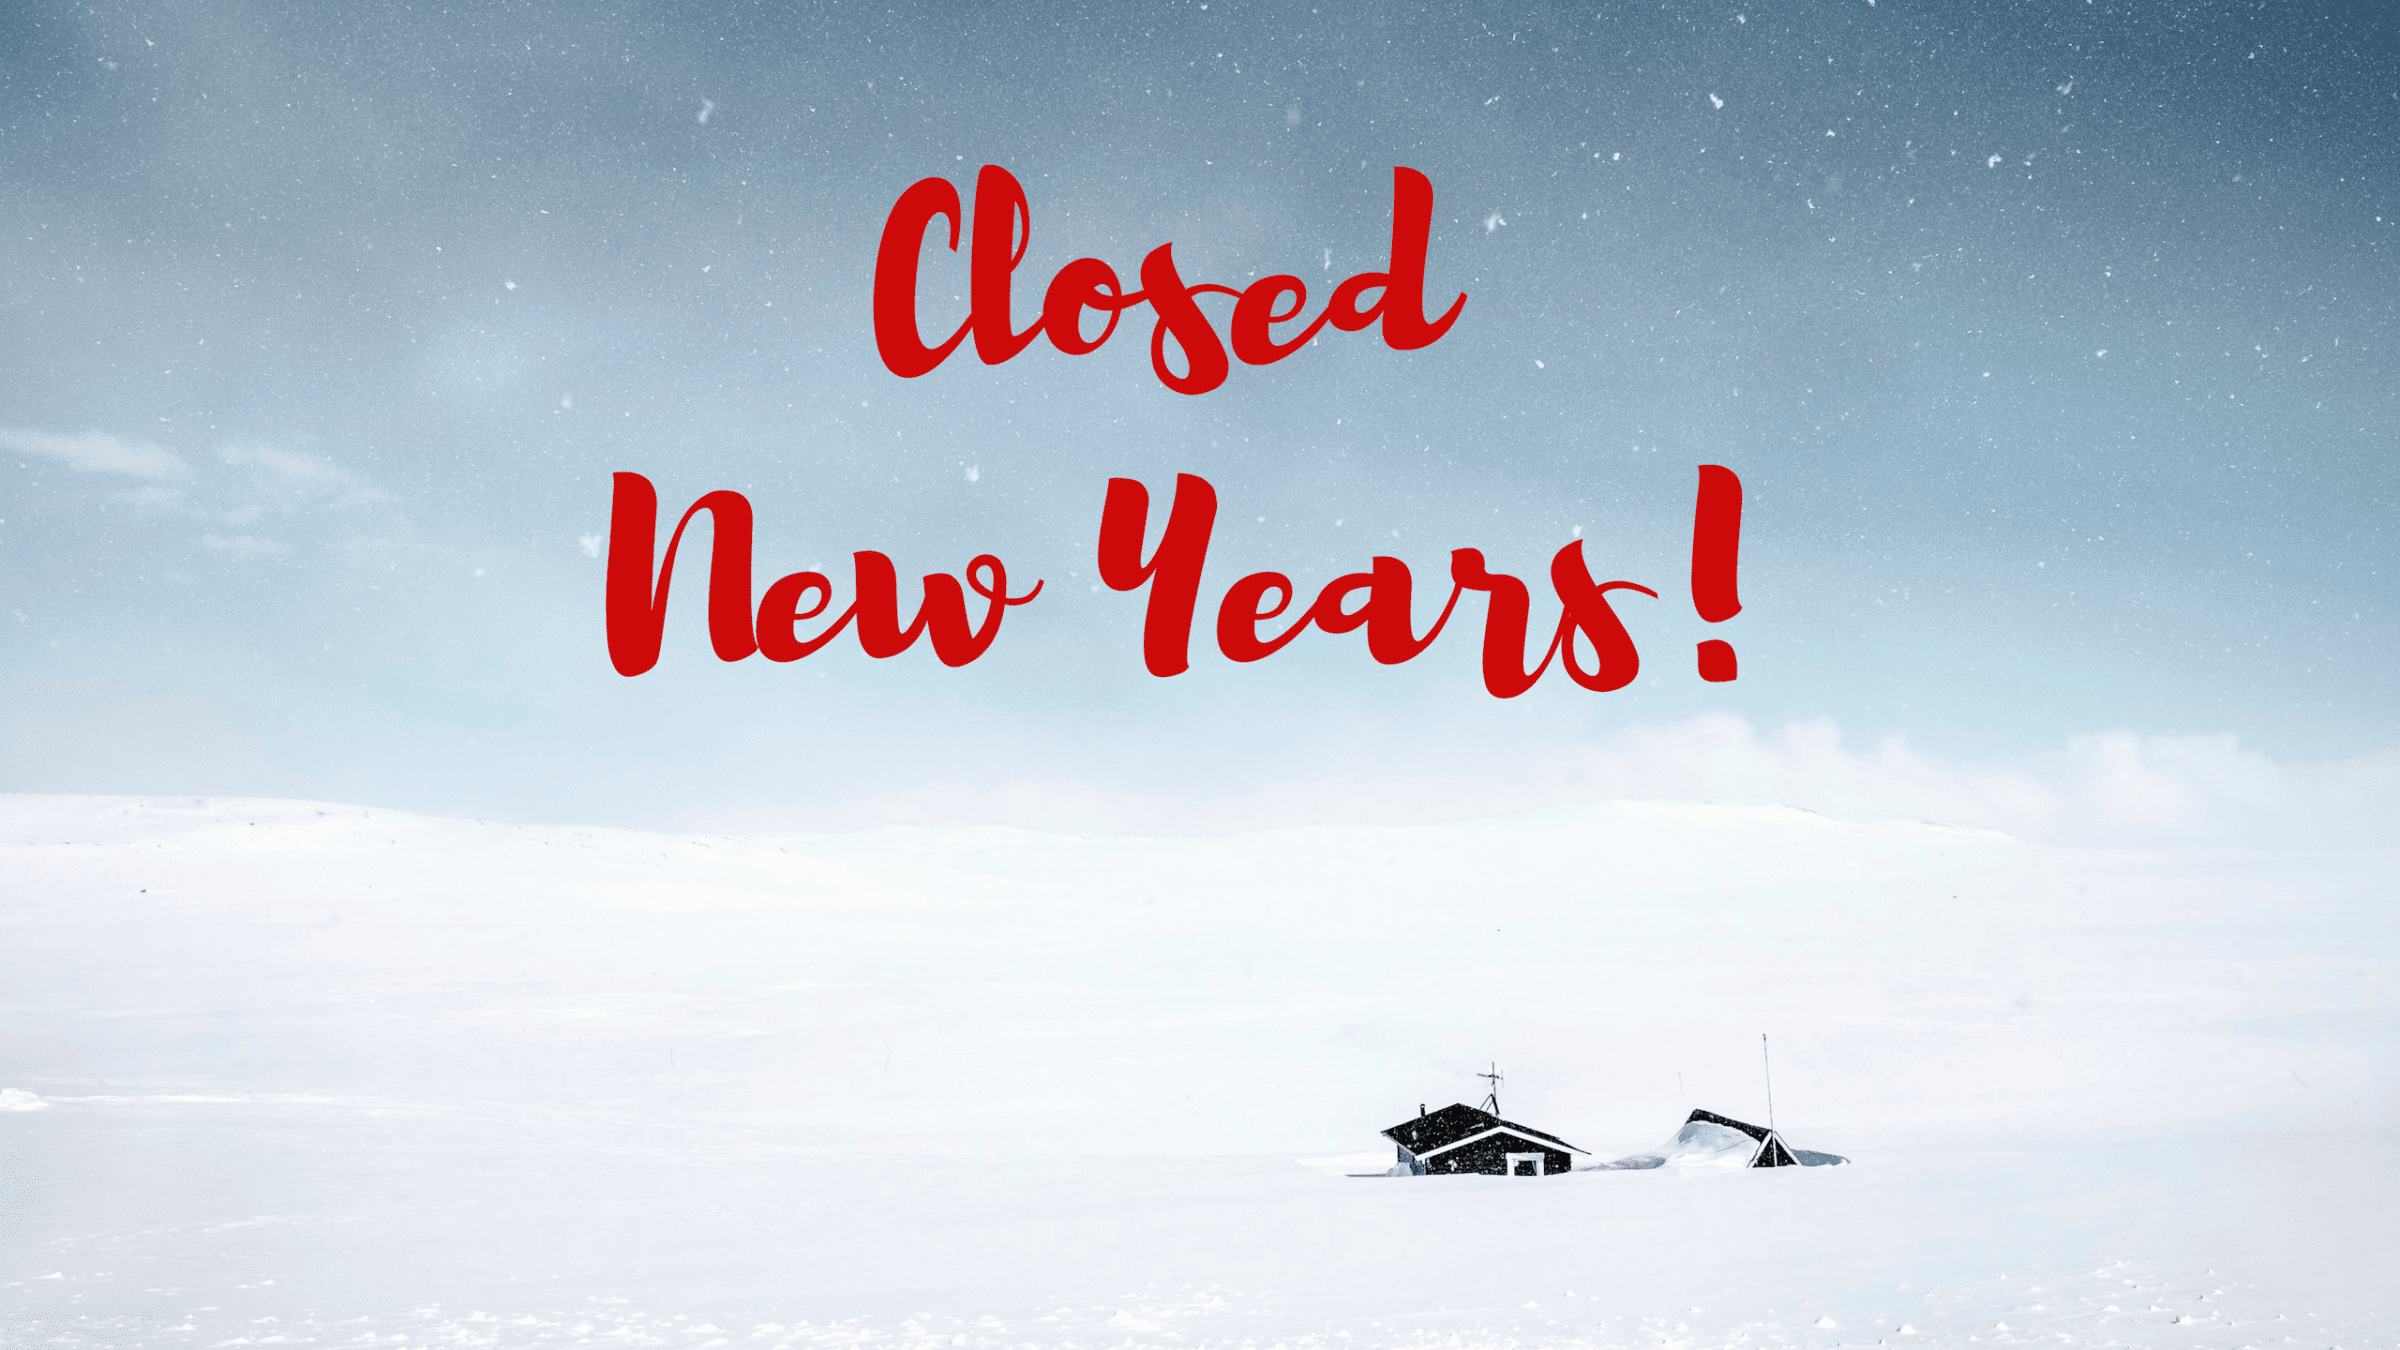 Closed New Years Eve